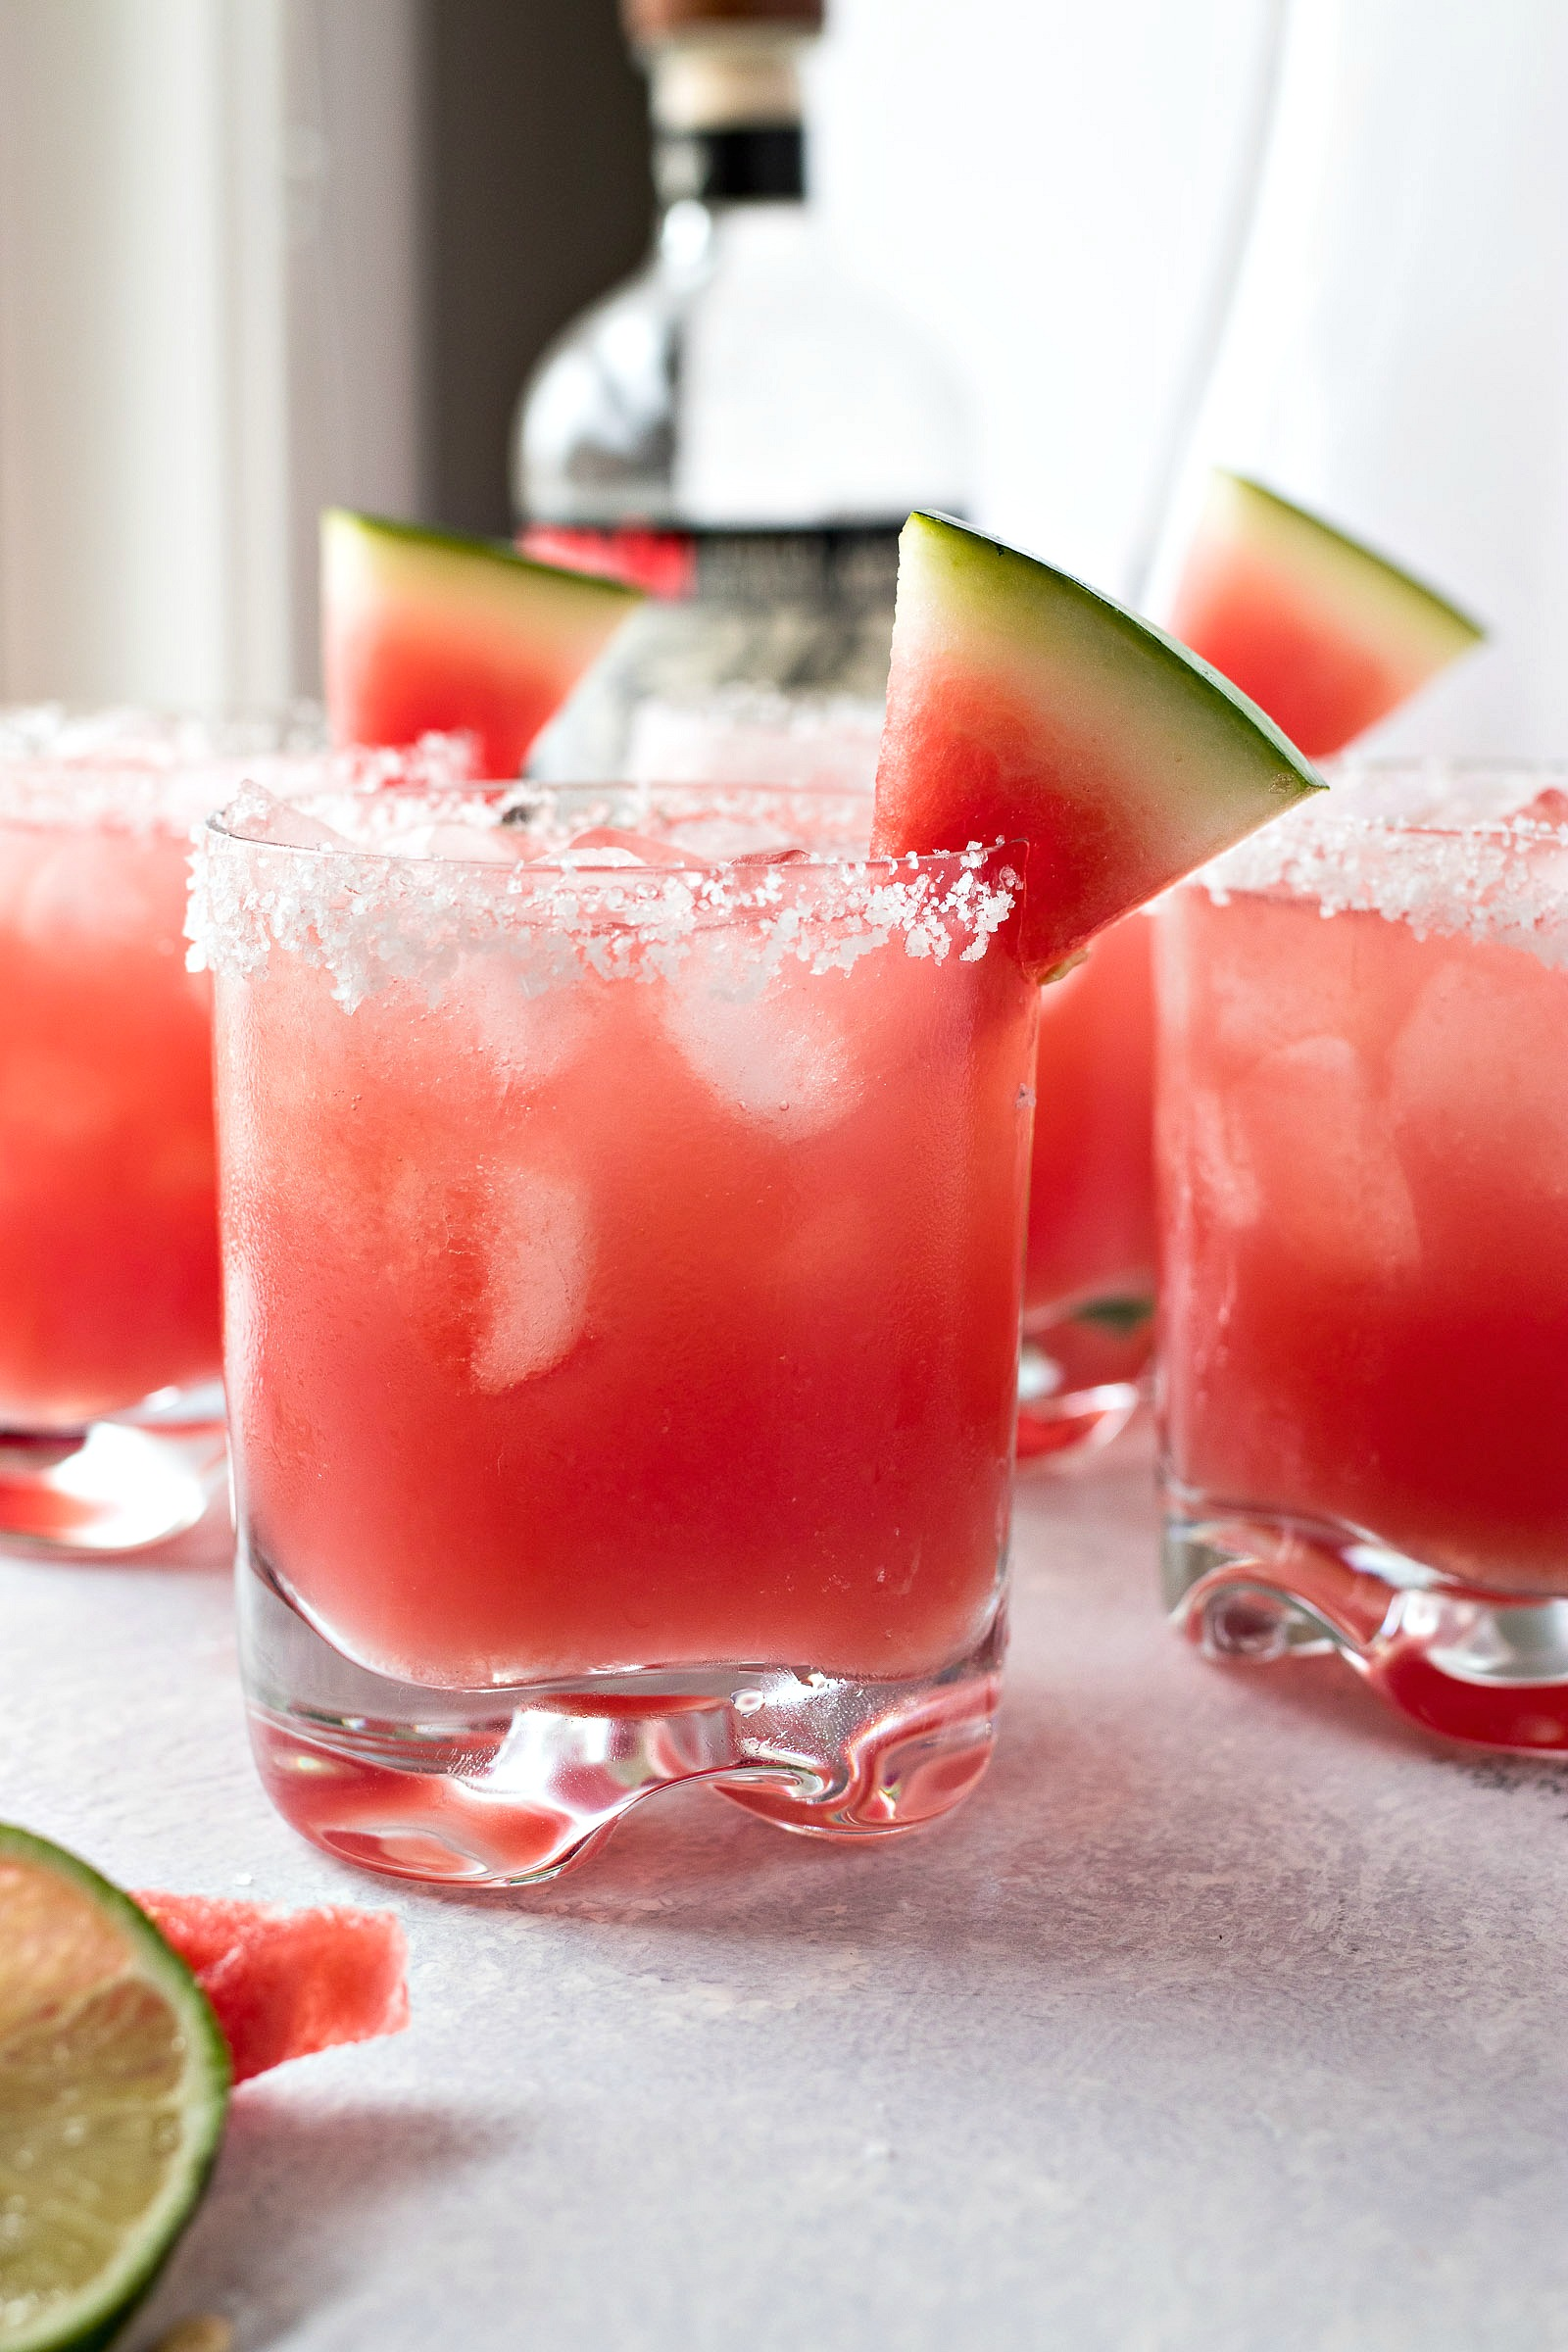 Glasses of Watermelon Margaritas